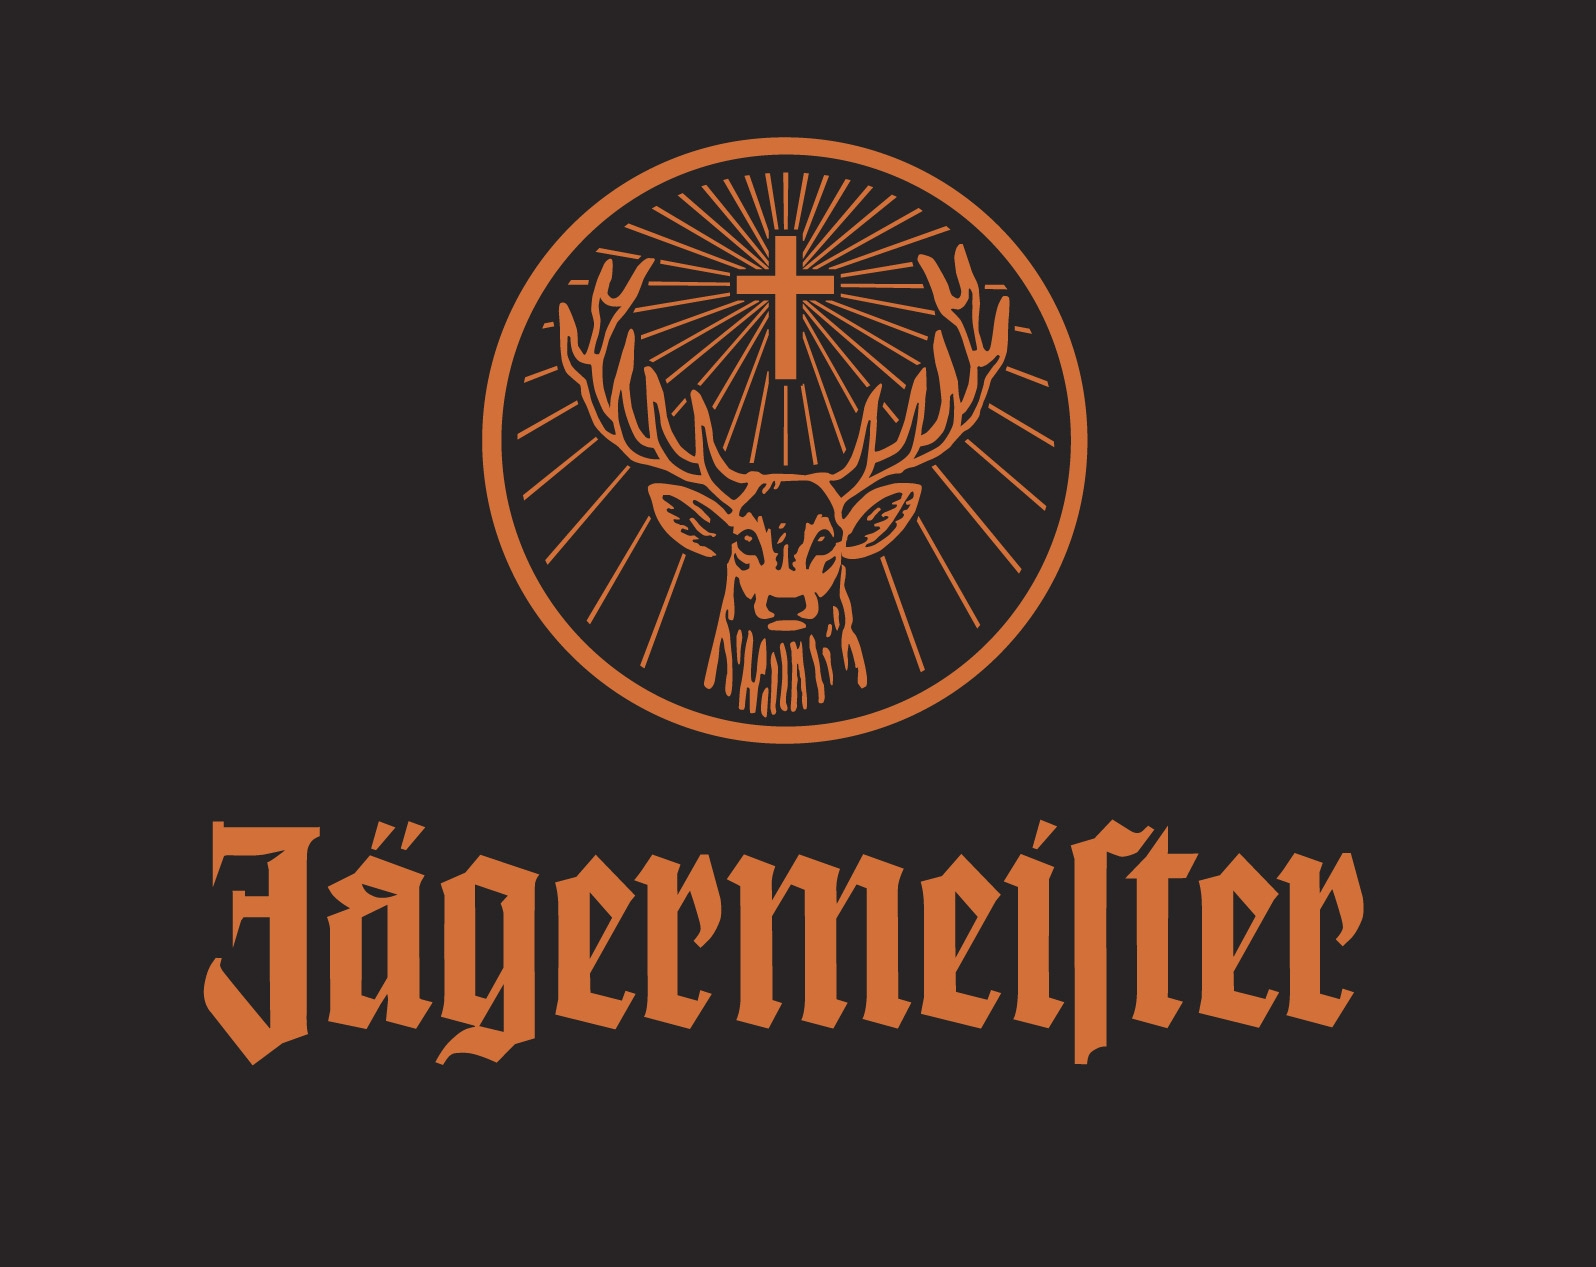 http://lounge.obviousmag.org/ideias_de_guerrilha/2016/07/01/jagermeister_10.jpg